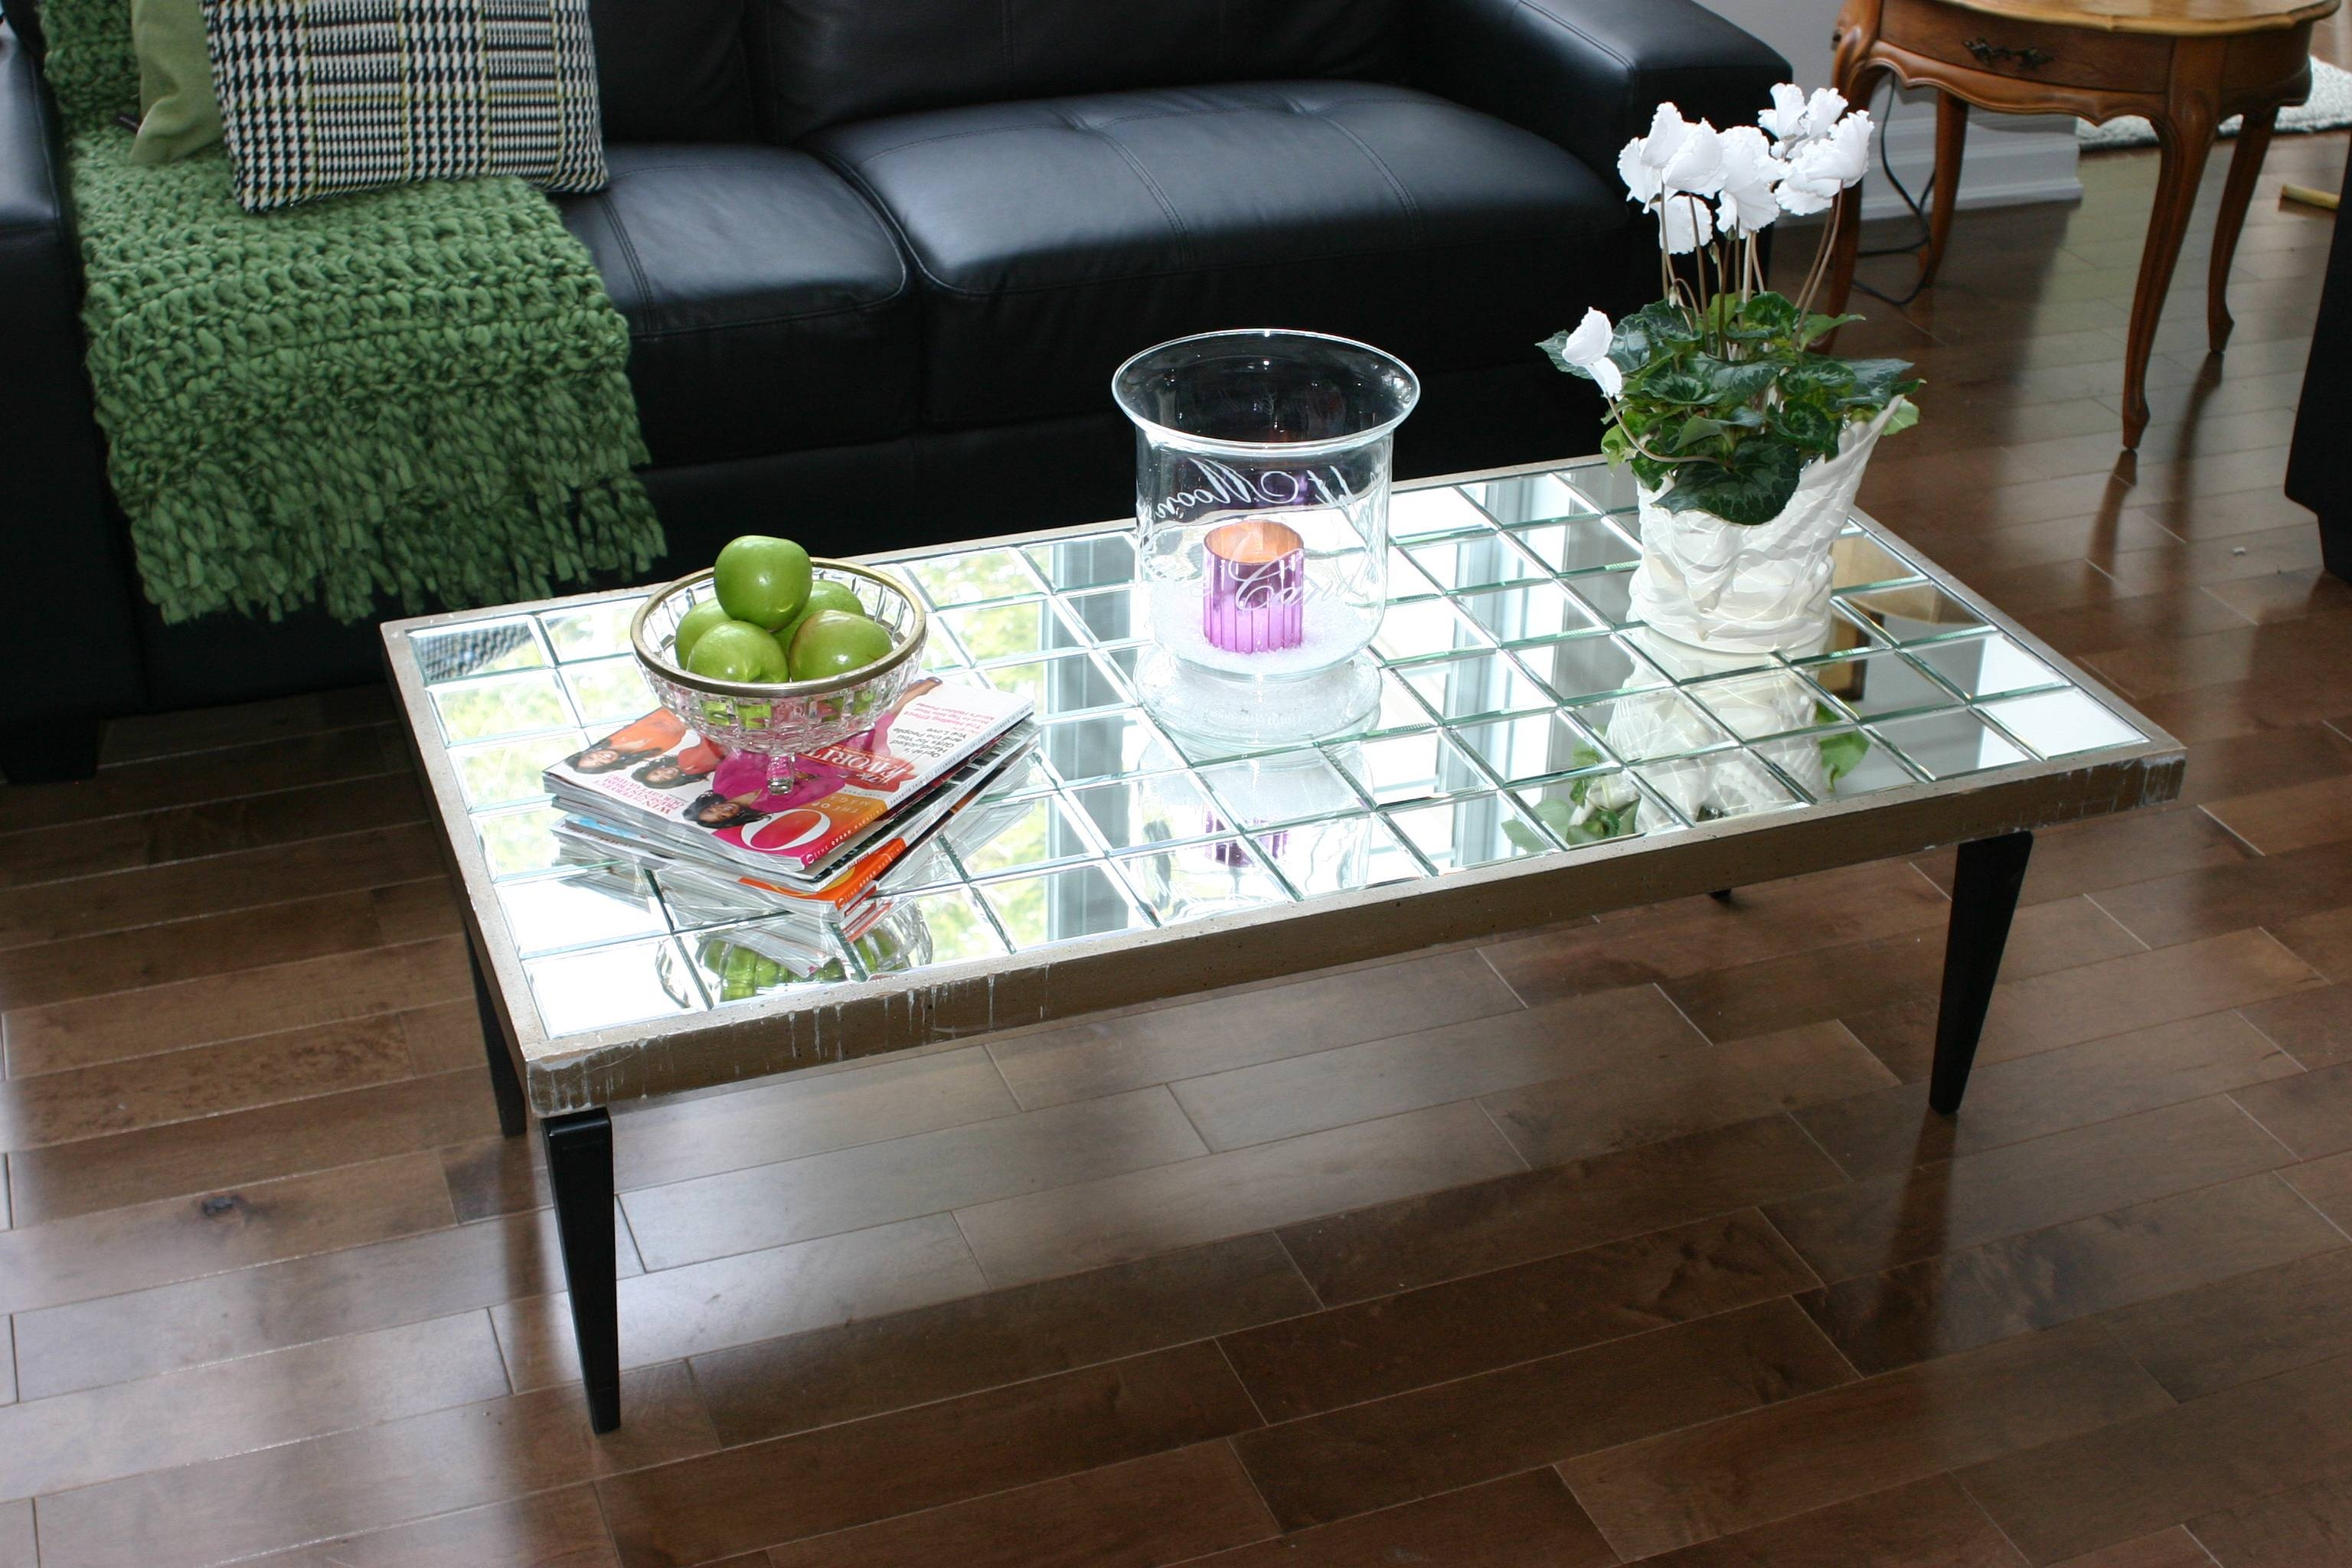 Furniture: Appealing Mirrored Coffee Table For Living Room Throughout Antique Mirrored Coffee Tables (View 11 of 30)